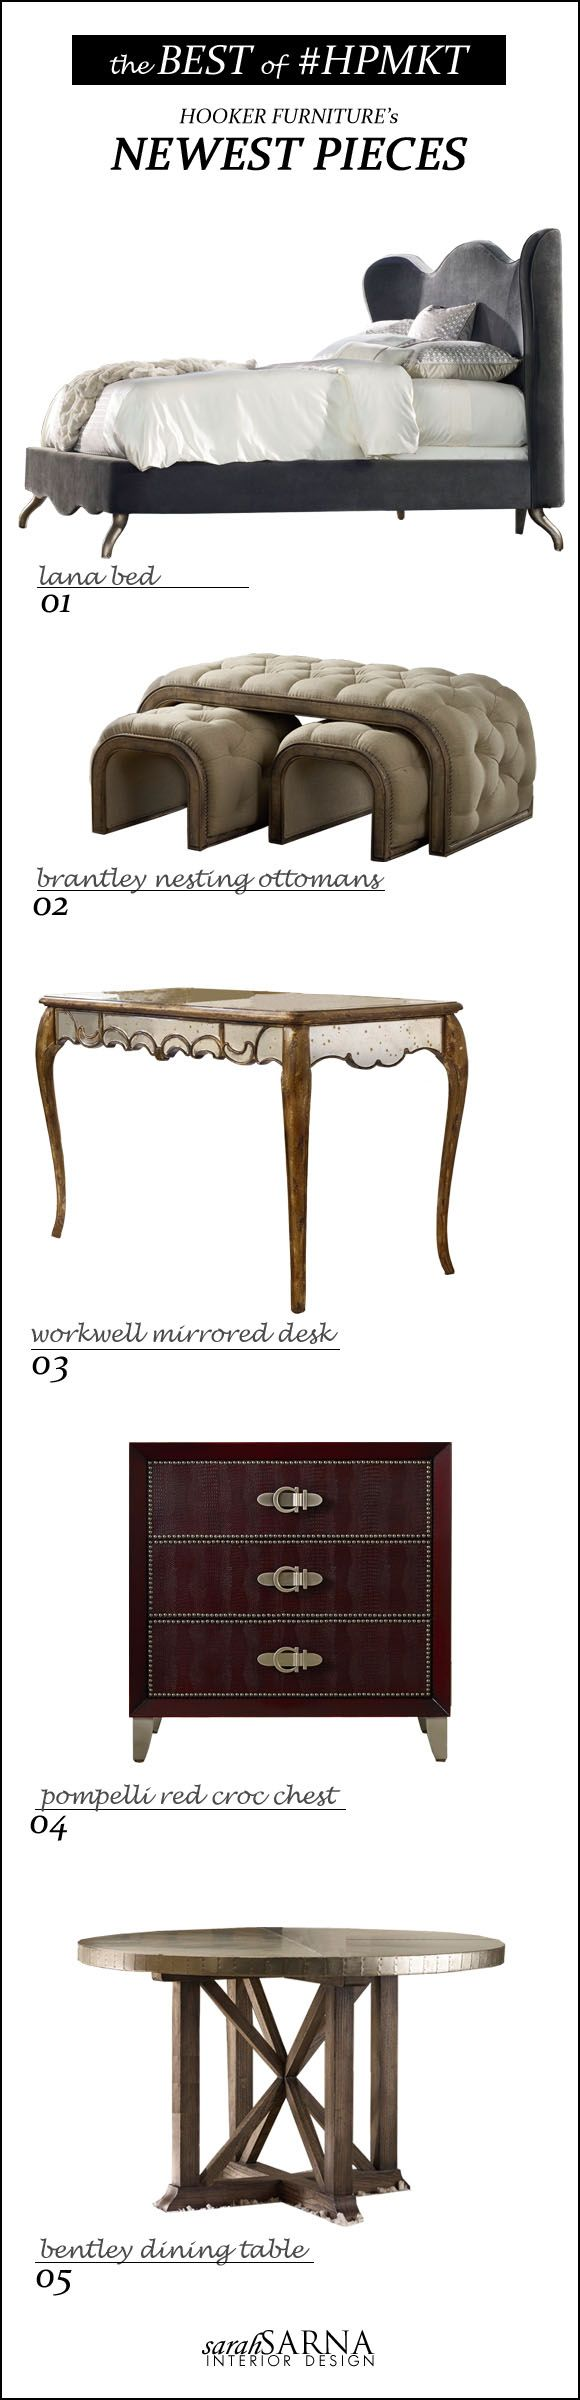 Hooker Furniture Newest Pieces